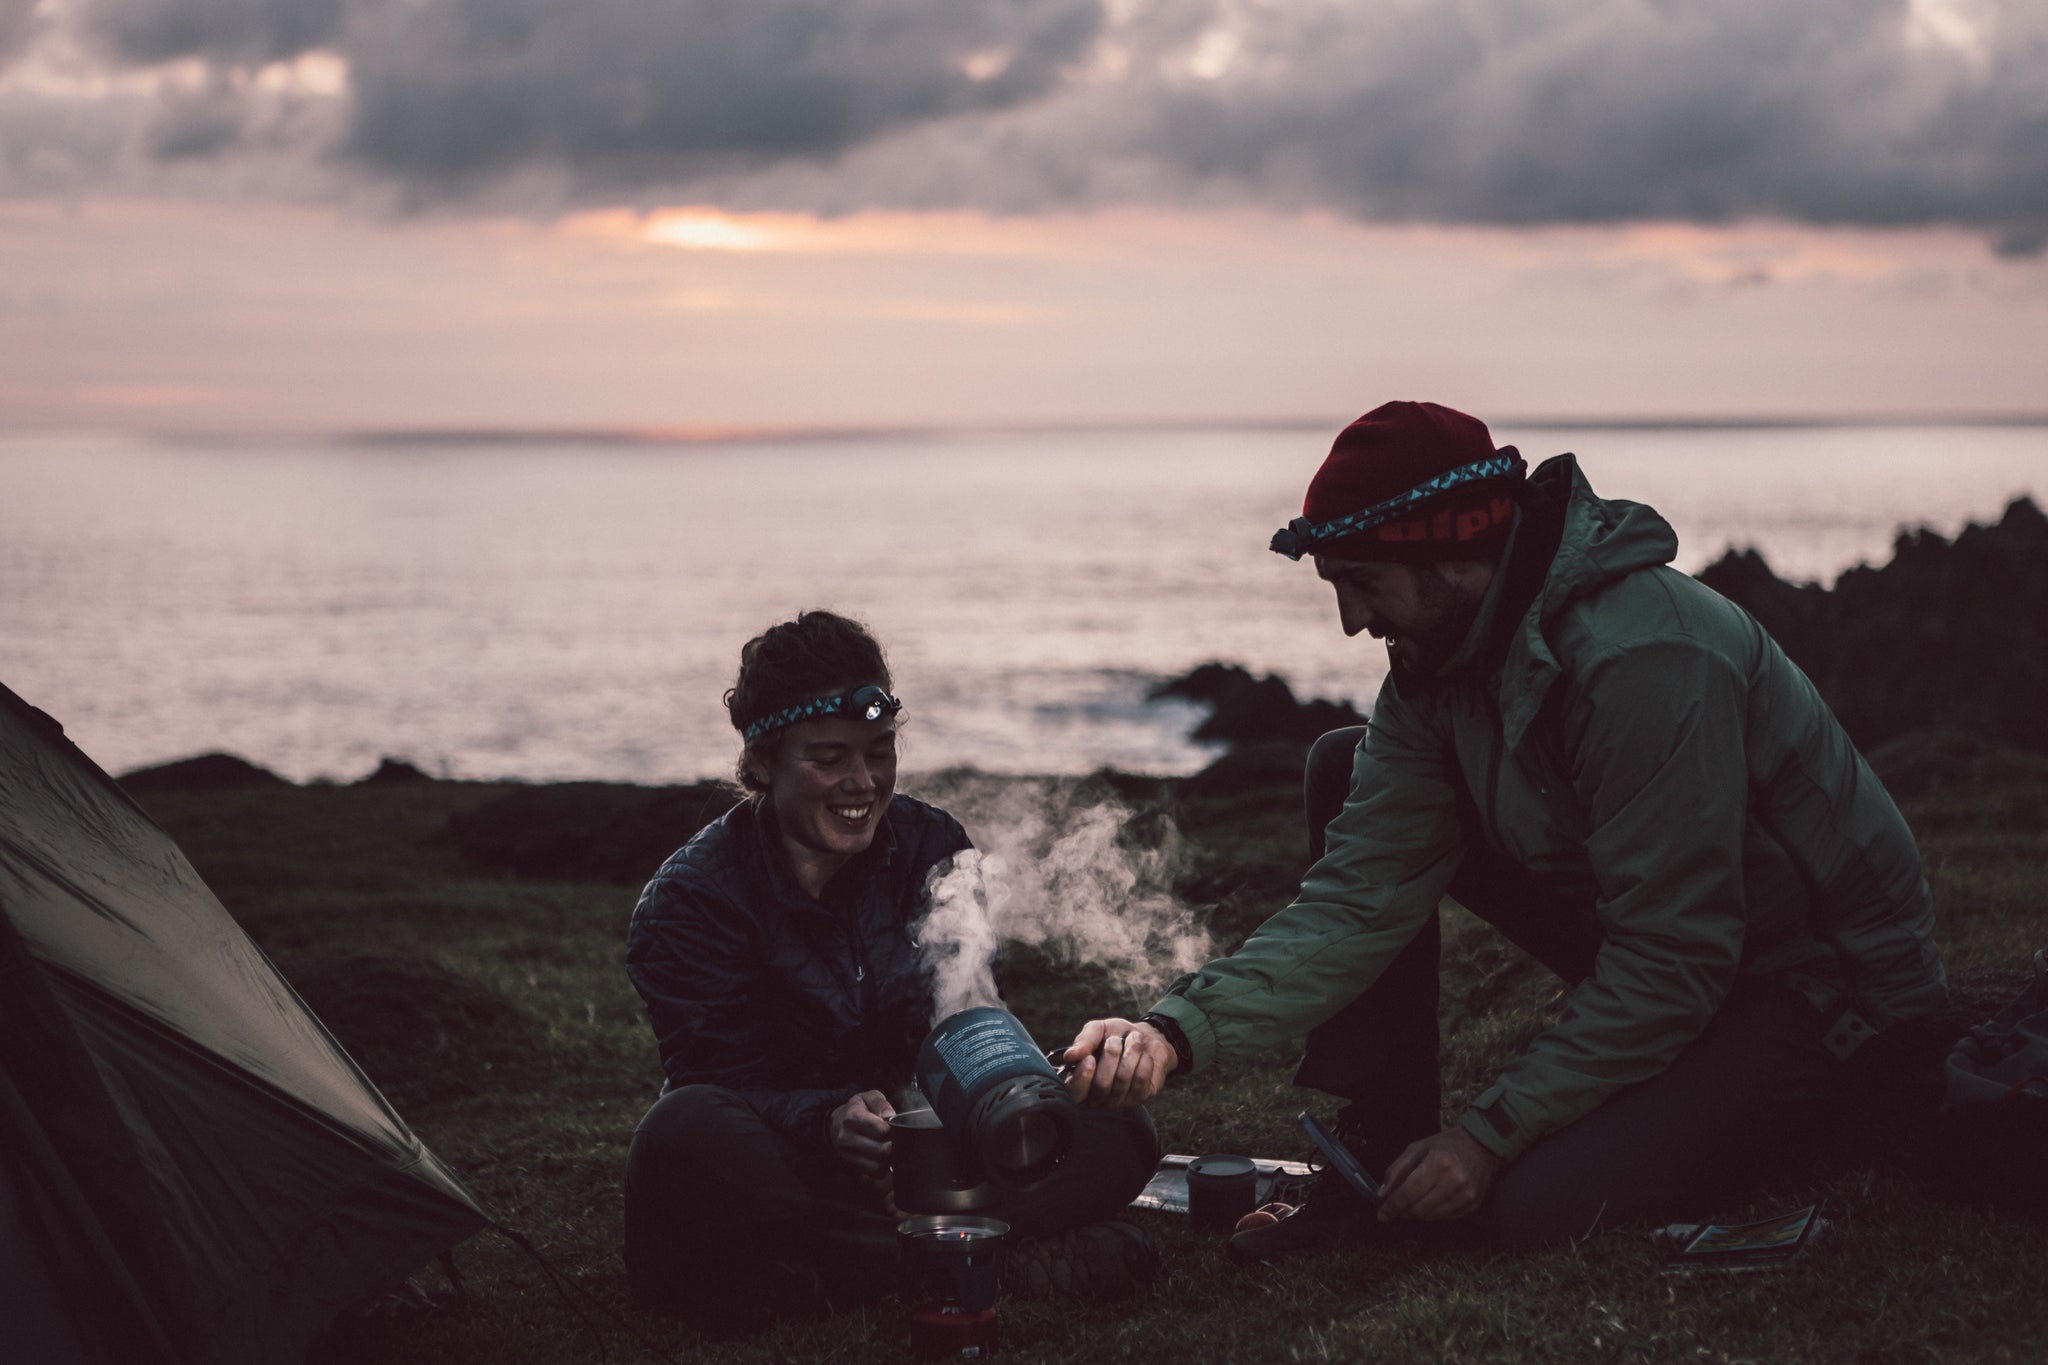 Two people camping and cooking dinner outside their tent on a camping stove